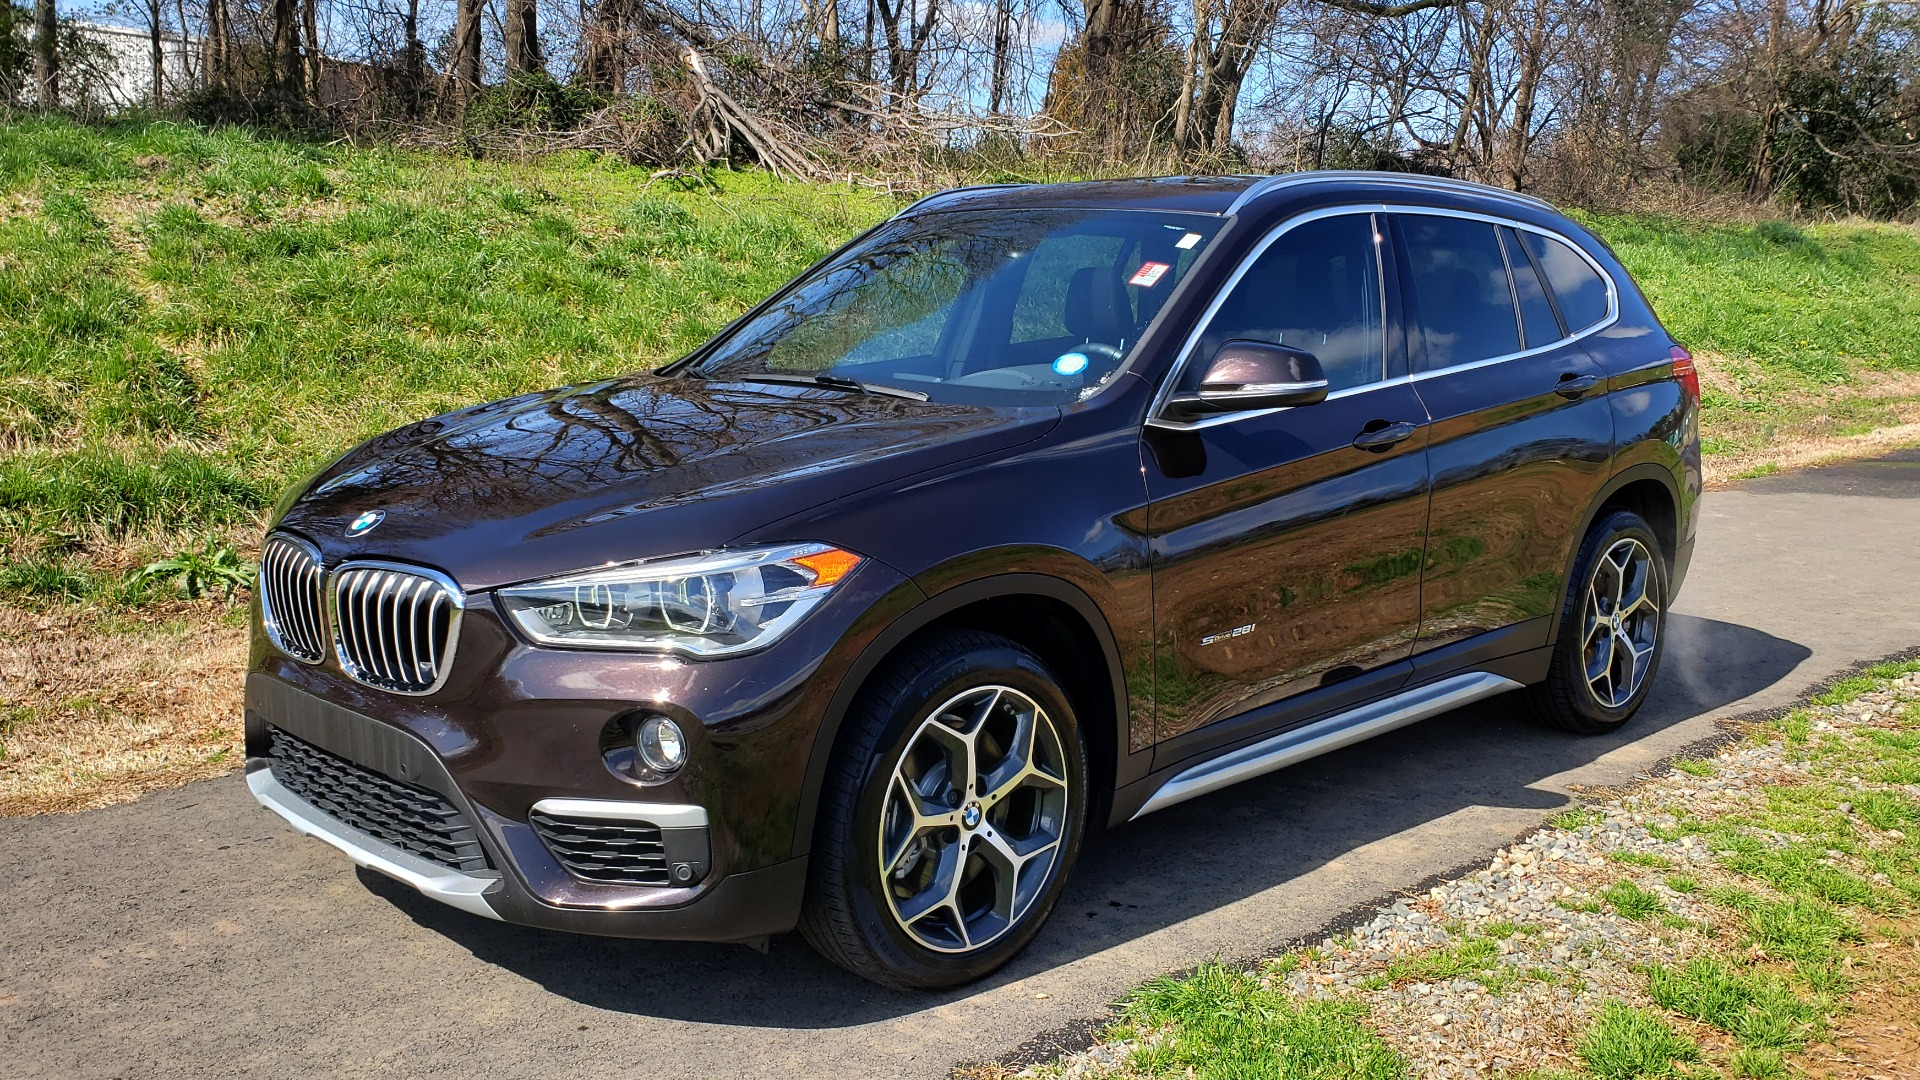 Used 2017 BMW X1 SDRIVE28I PREMIUM / DRVR ASST / PANO-ROOF / REARVIEW for sale Sold at Formula Imports in Charlotte NC 28227 1